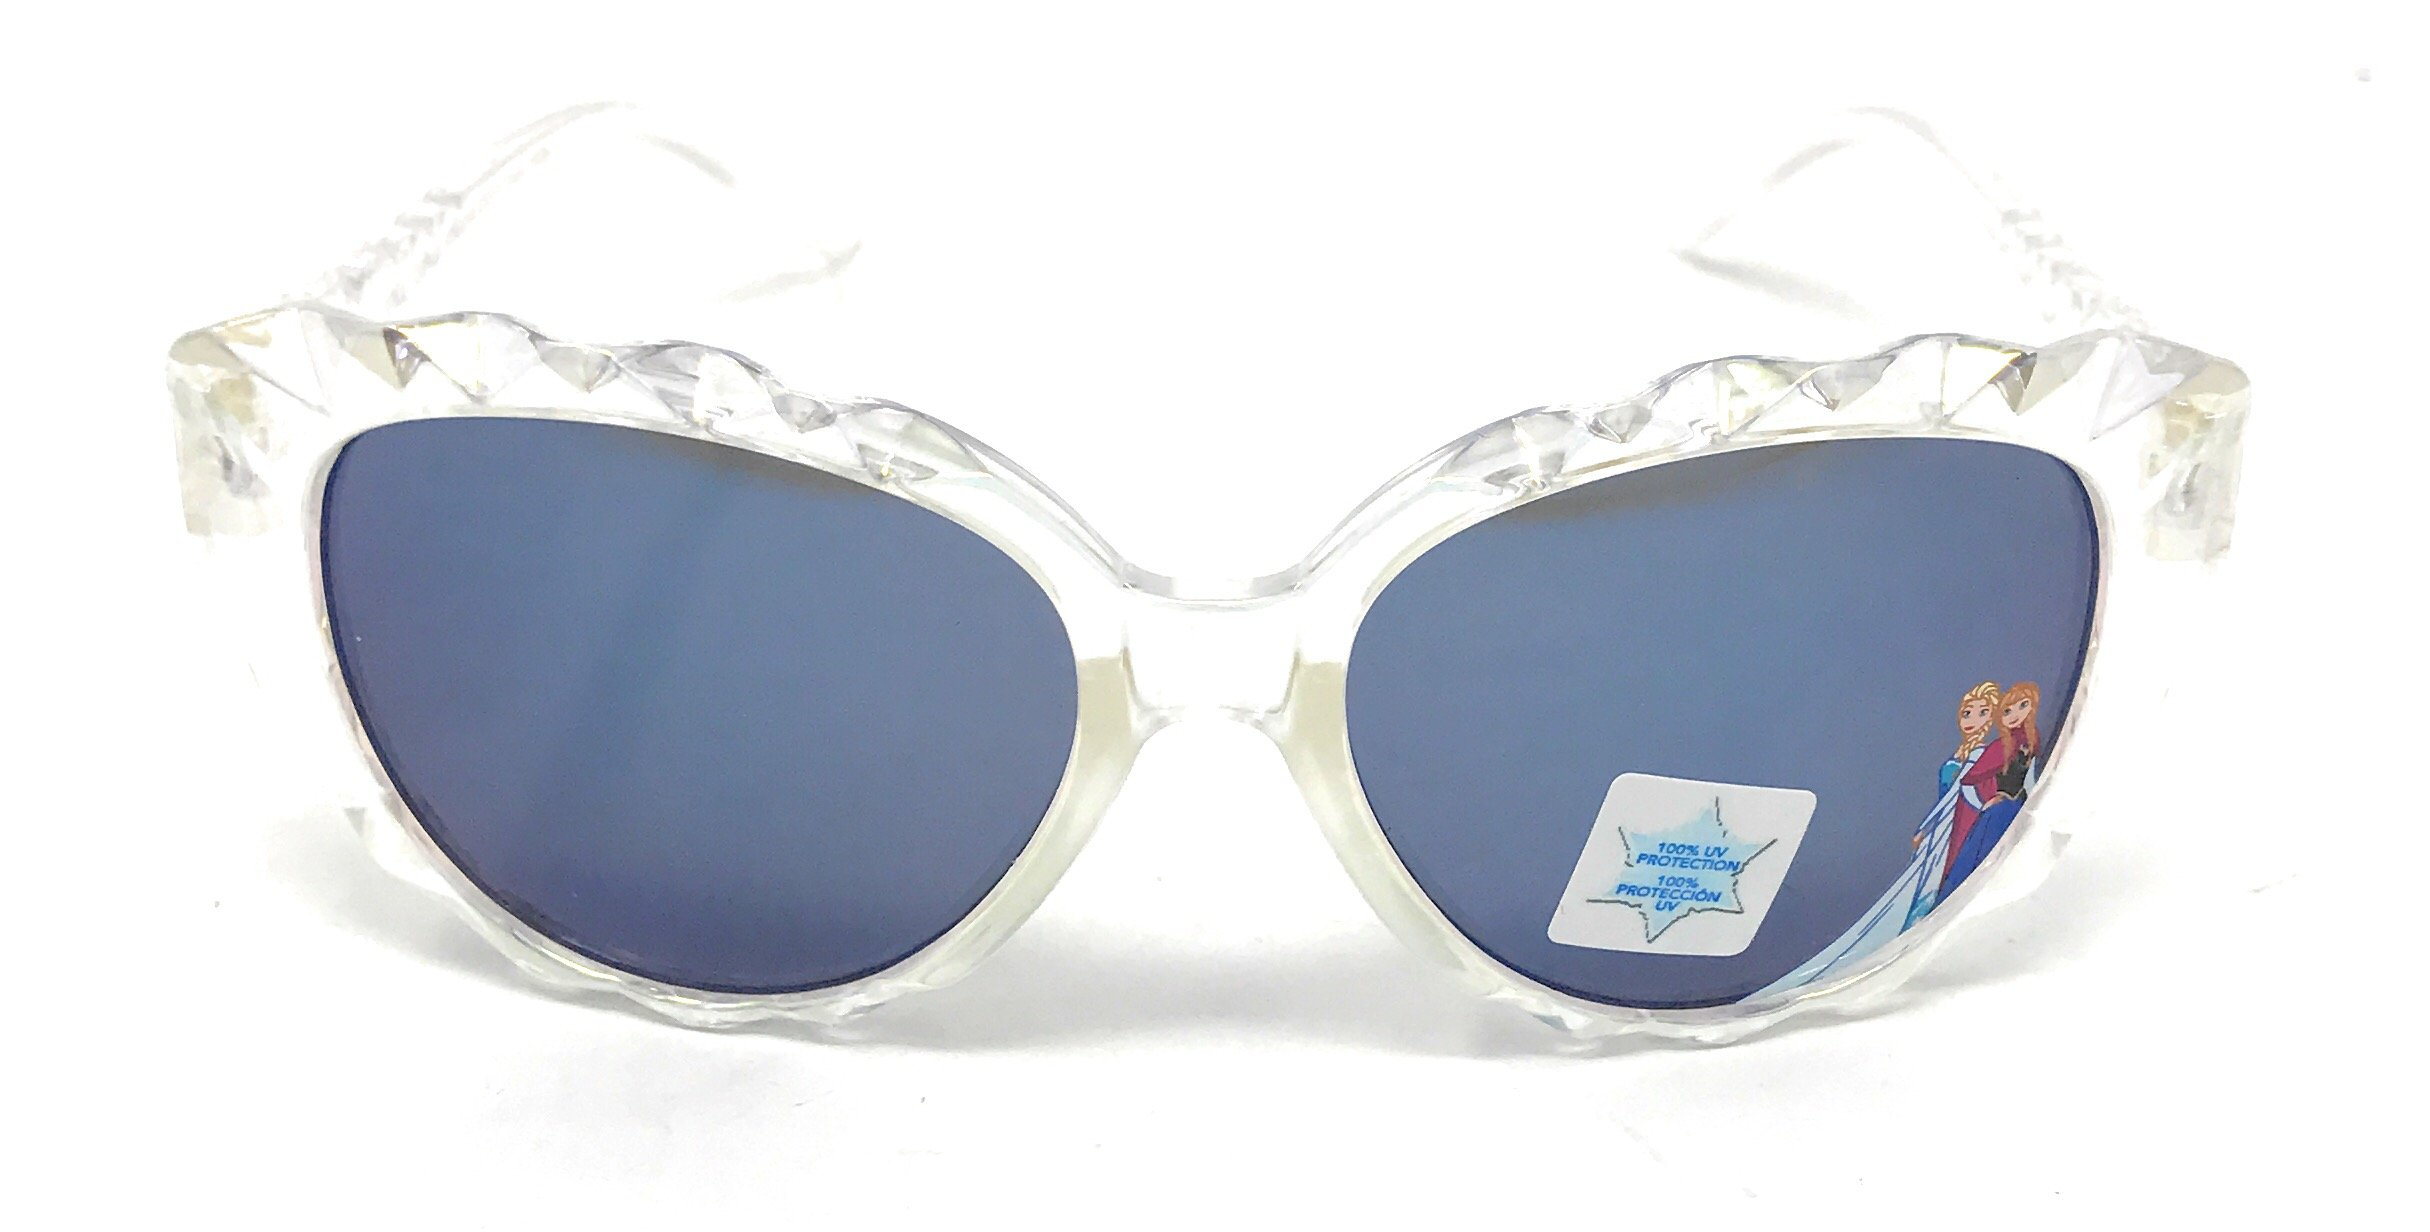 Disney Frozen Girl's Sunglasses in Crystal Diamond Design with Elsa and Anna Character on Lenses - 100% UV Protection